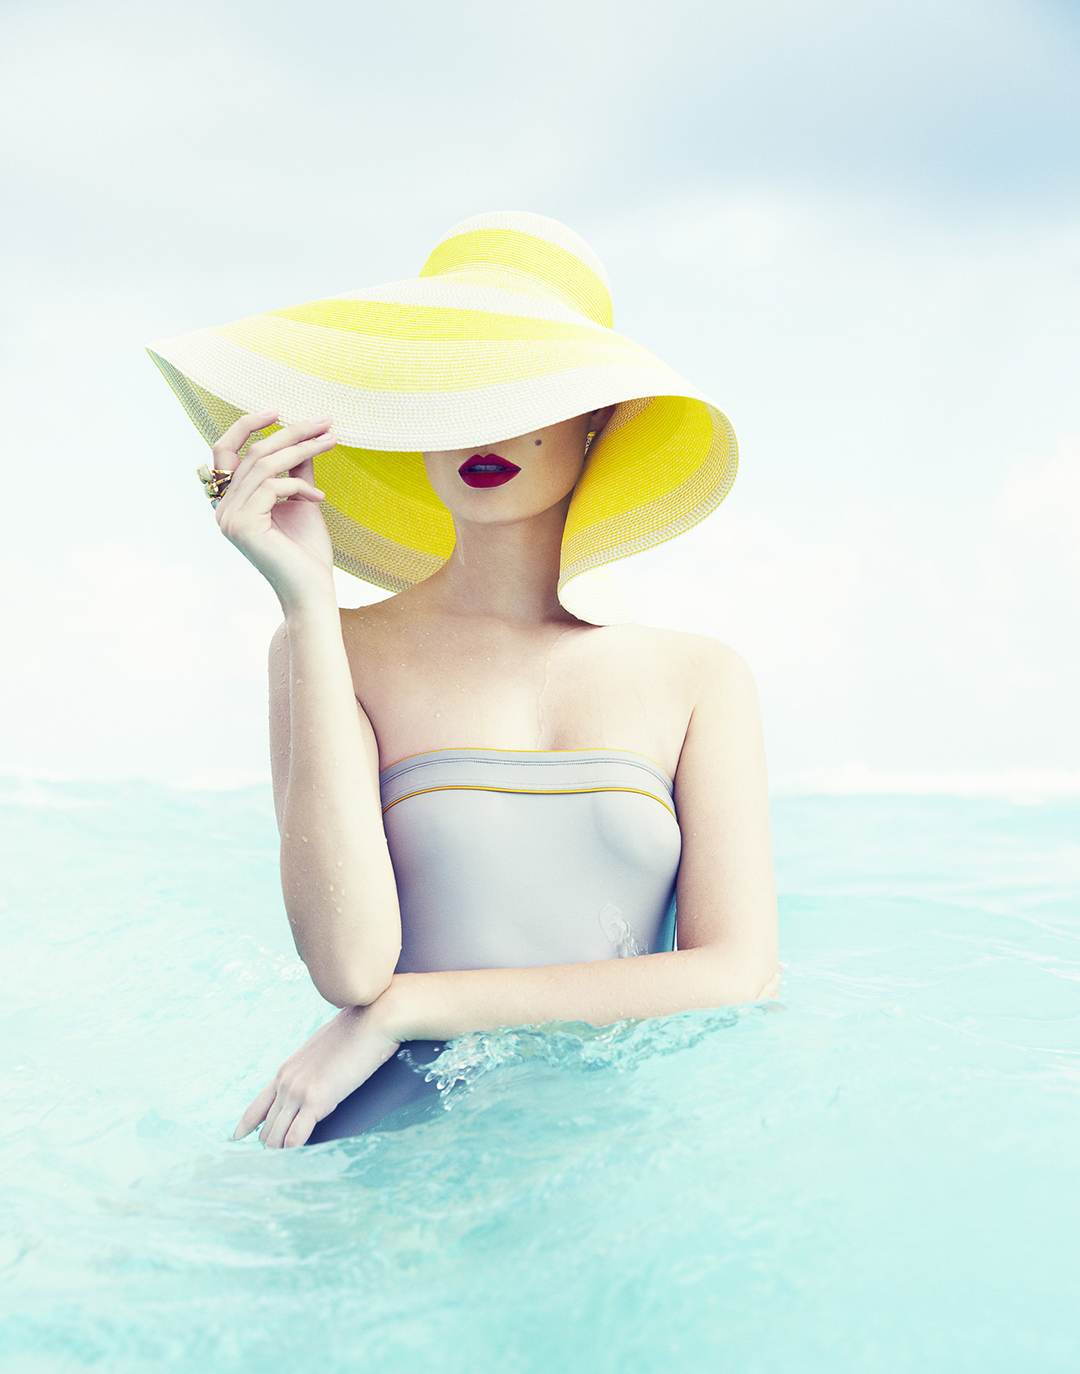 A fashion photo of a woman in water